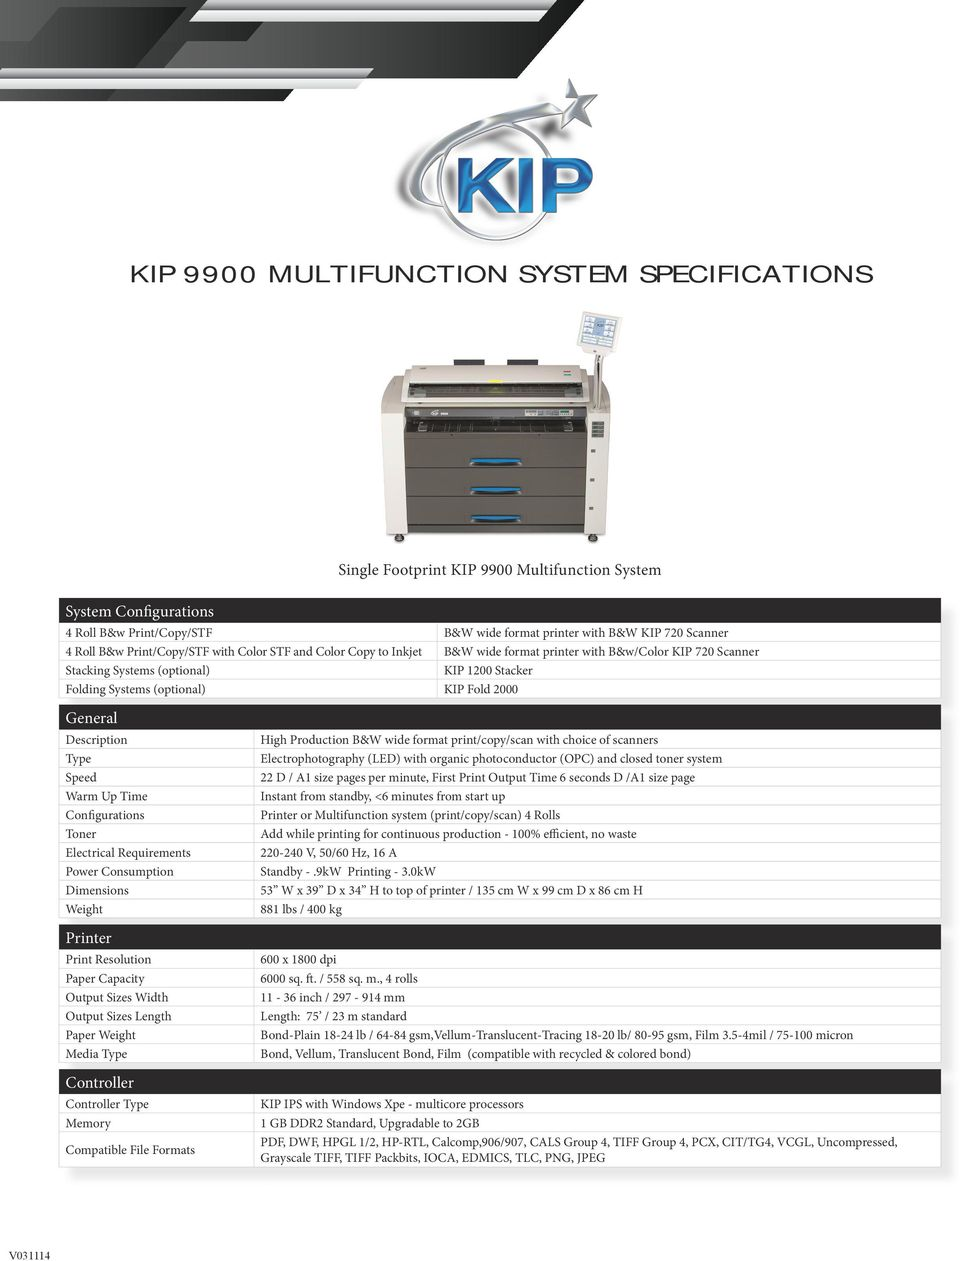 KIP 9900 PRINT SYSTEM SPECIFICATIONS - PDF